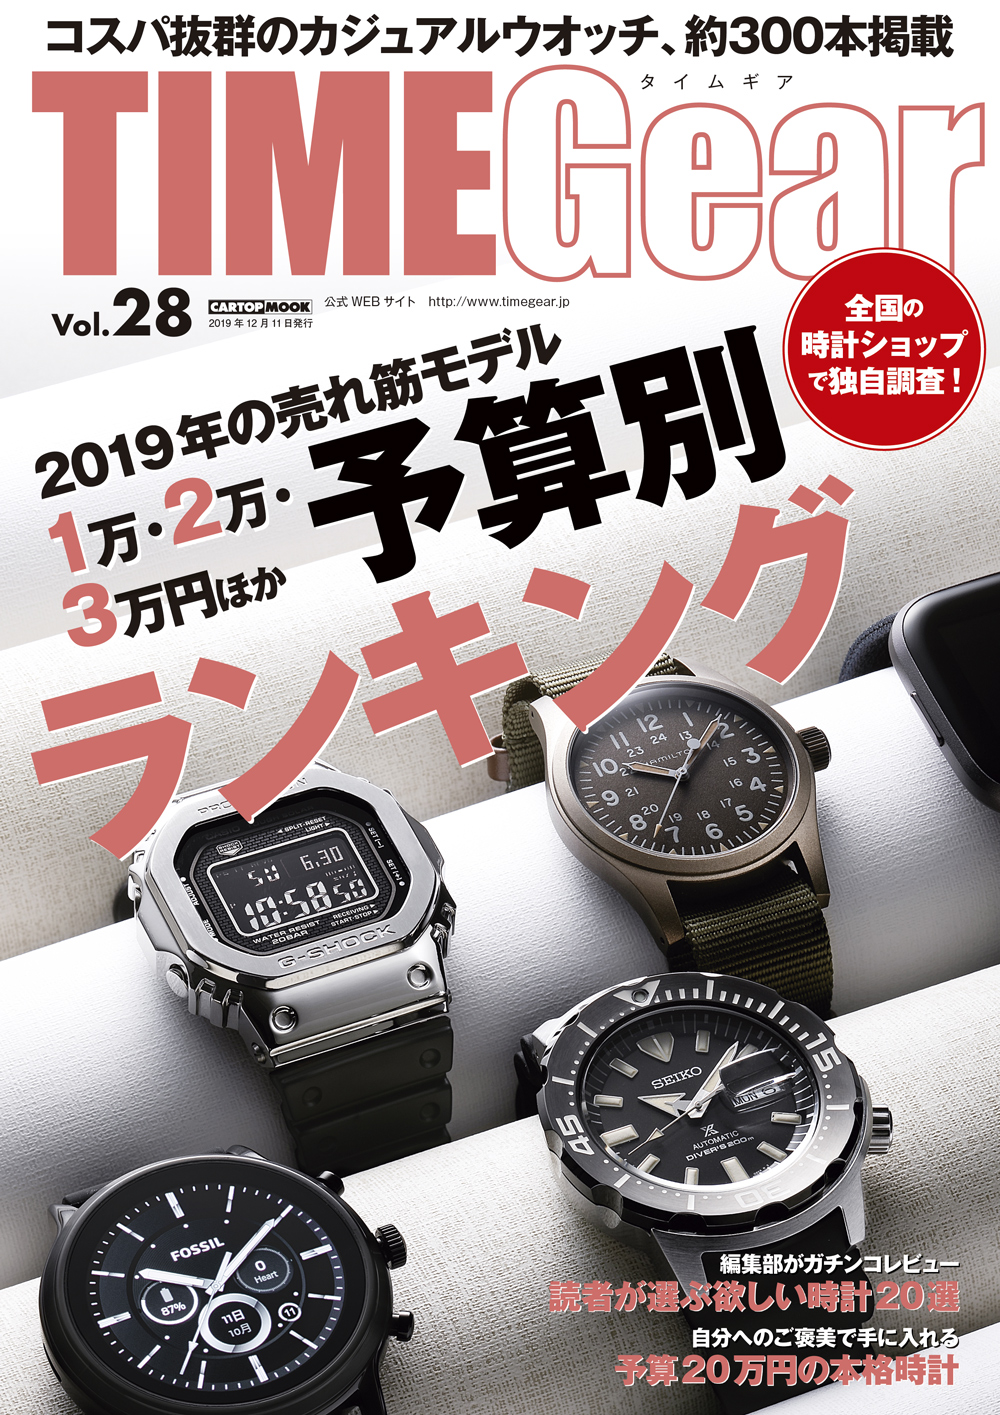 C's-Factory|書籍|TIME Gear Vol.28